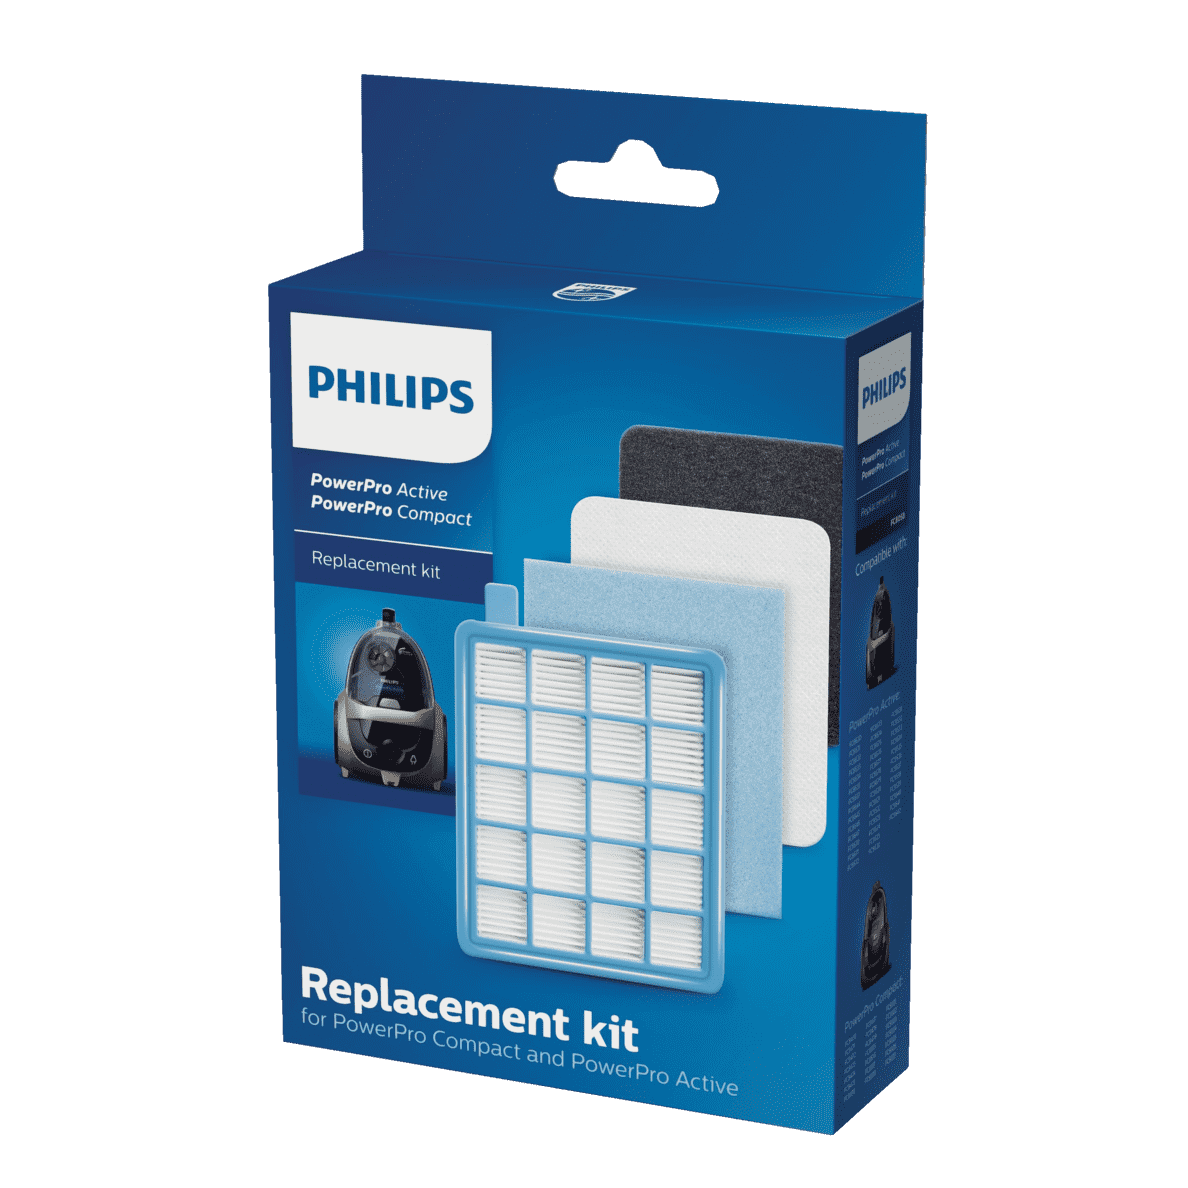 Philips Fc 8058/01 Replacement Kit Filterset